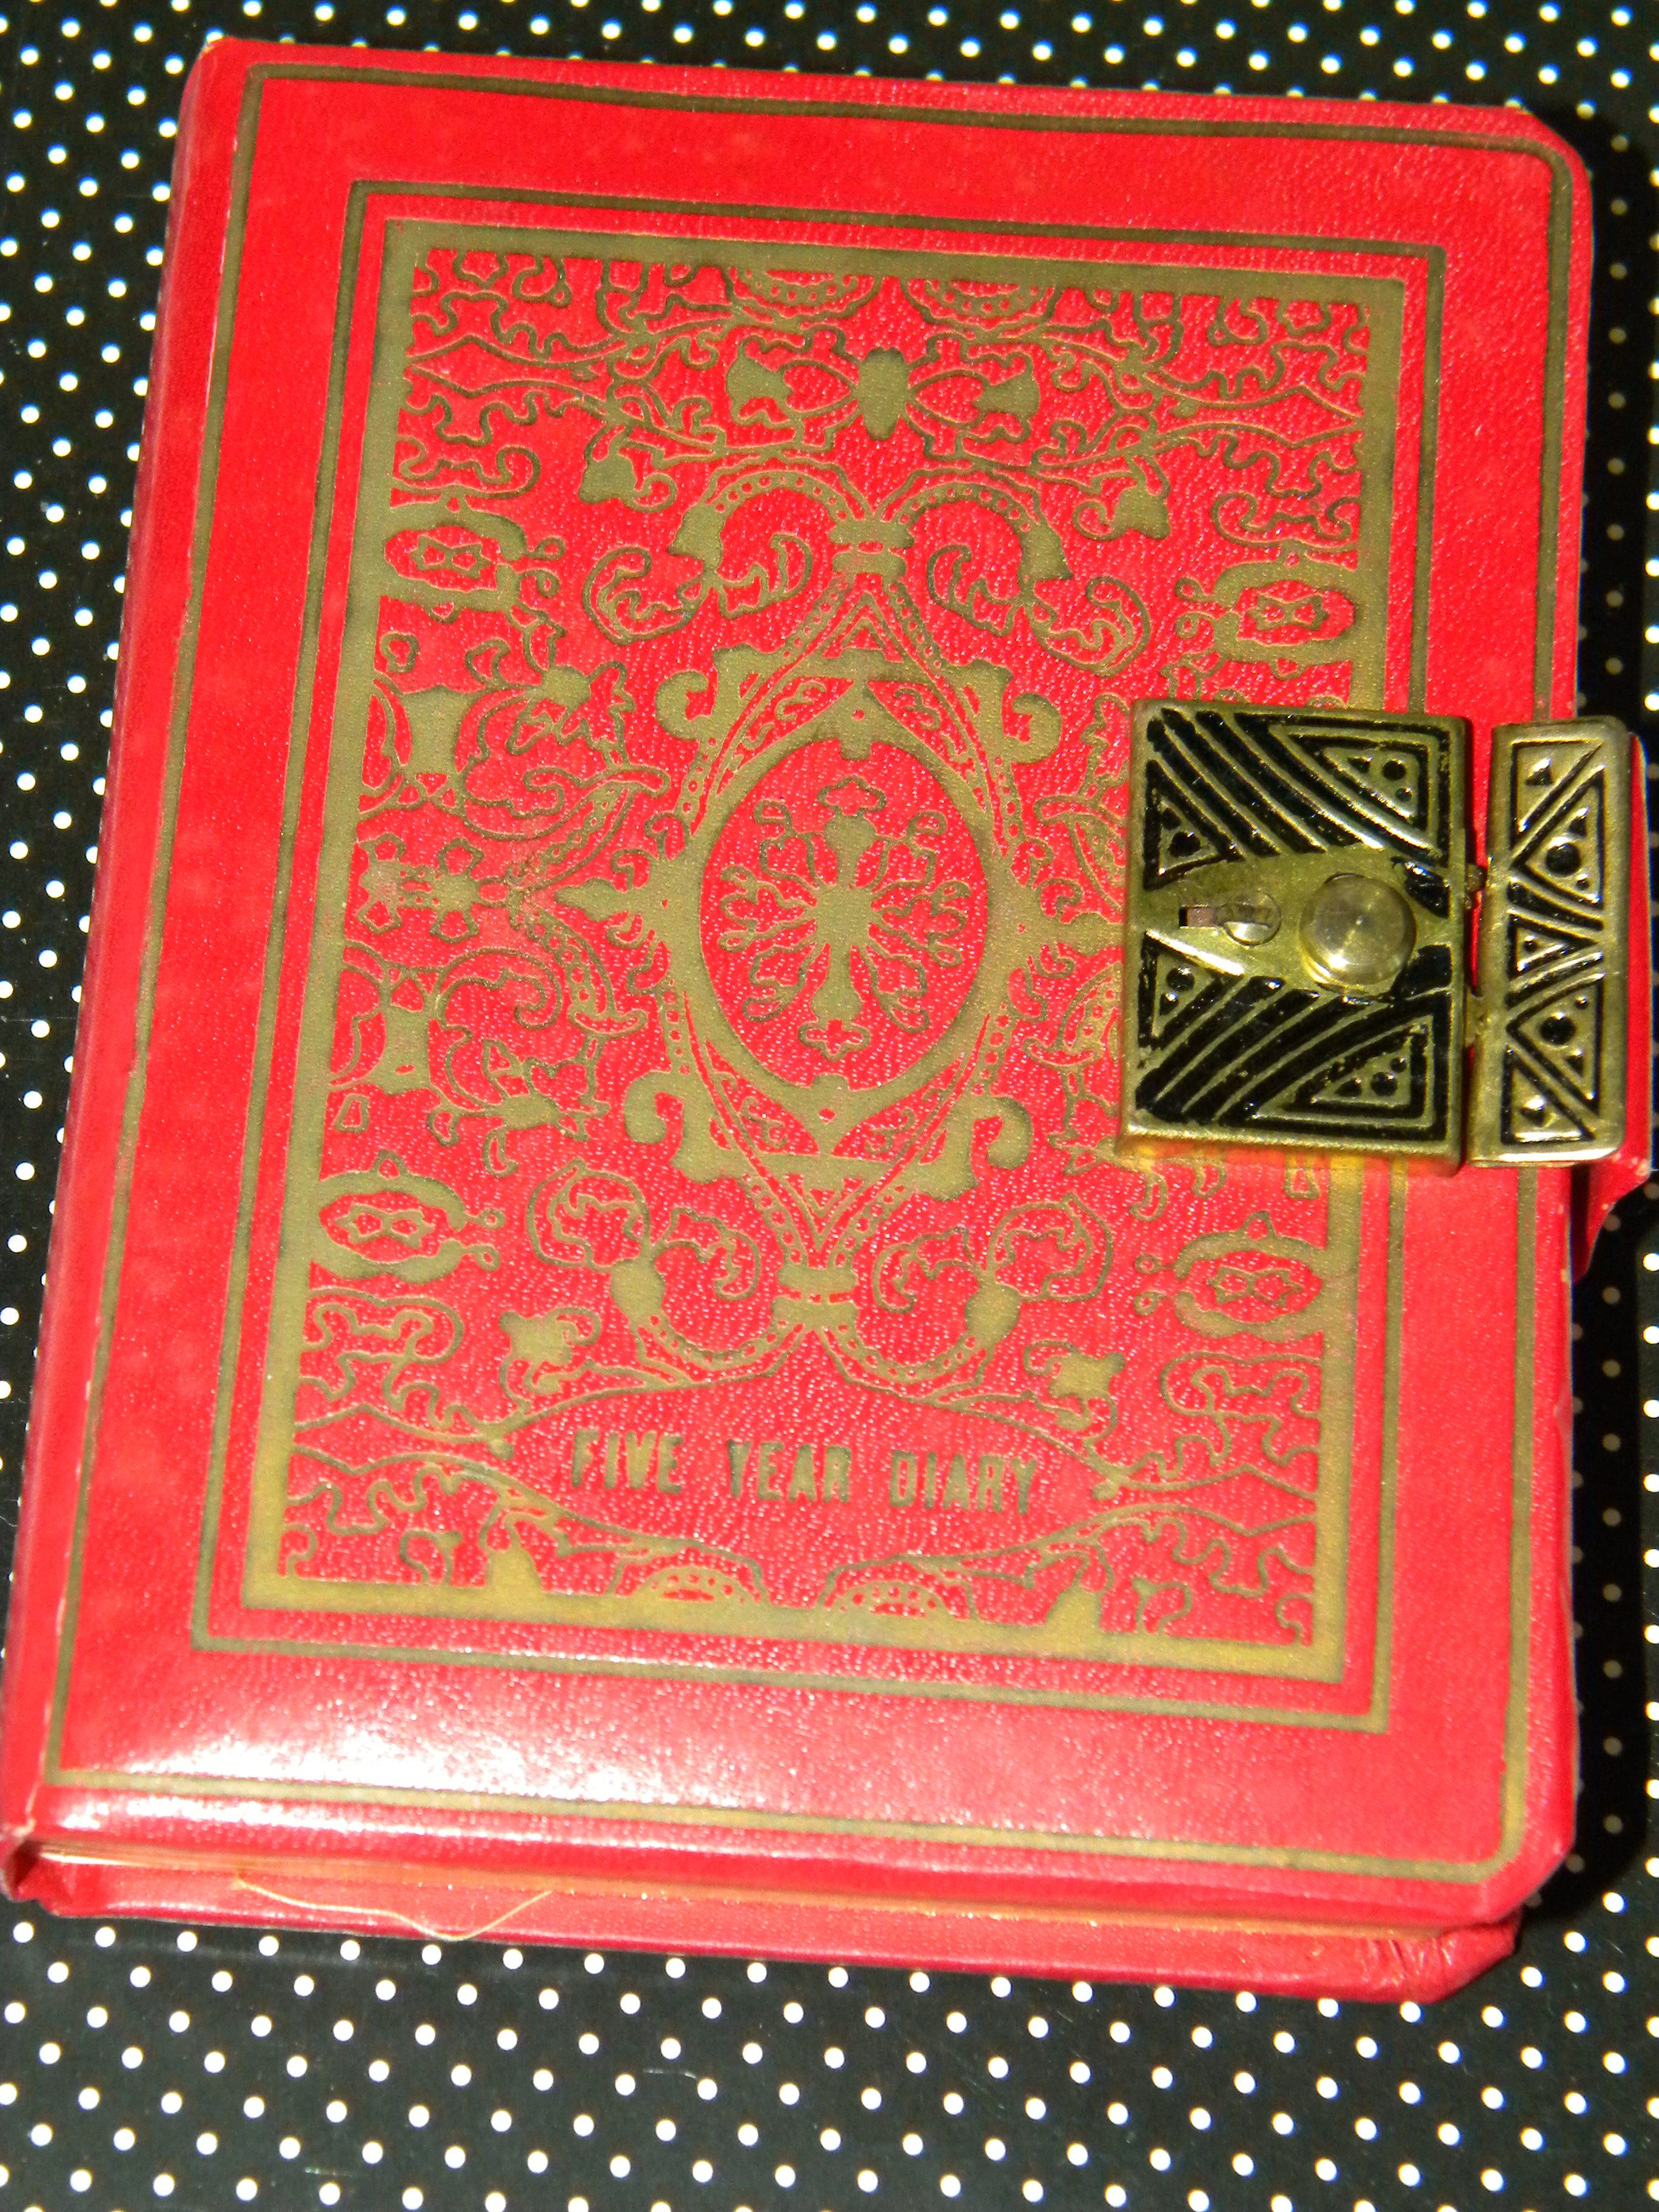 vintage year diary nostalgia s and s  vintage 5 year diary i had one like this that was cream colored leather it didn t take five years to decide that the lock was worthless and not to put